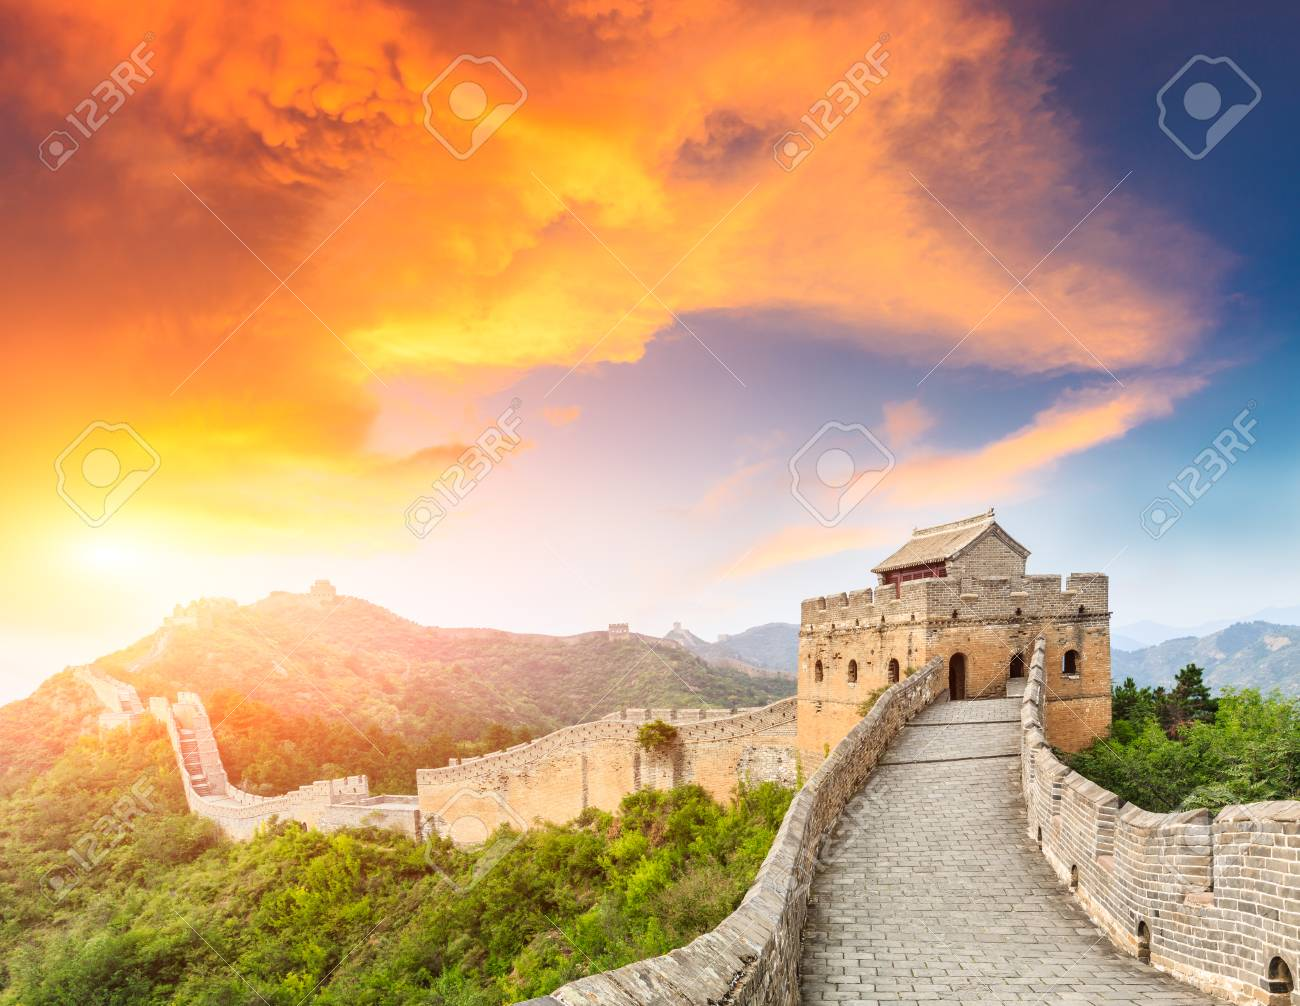 Great Wall of China at the jinshanling section,sunset landscape - 92773692